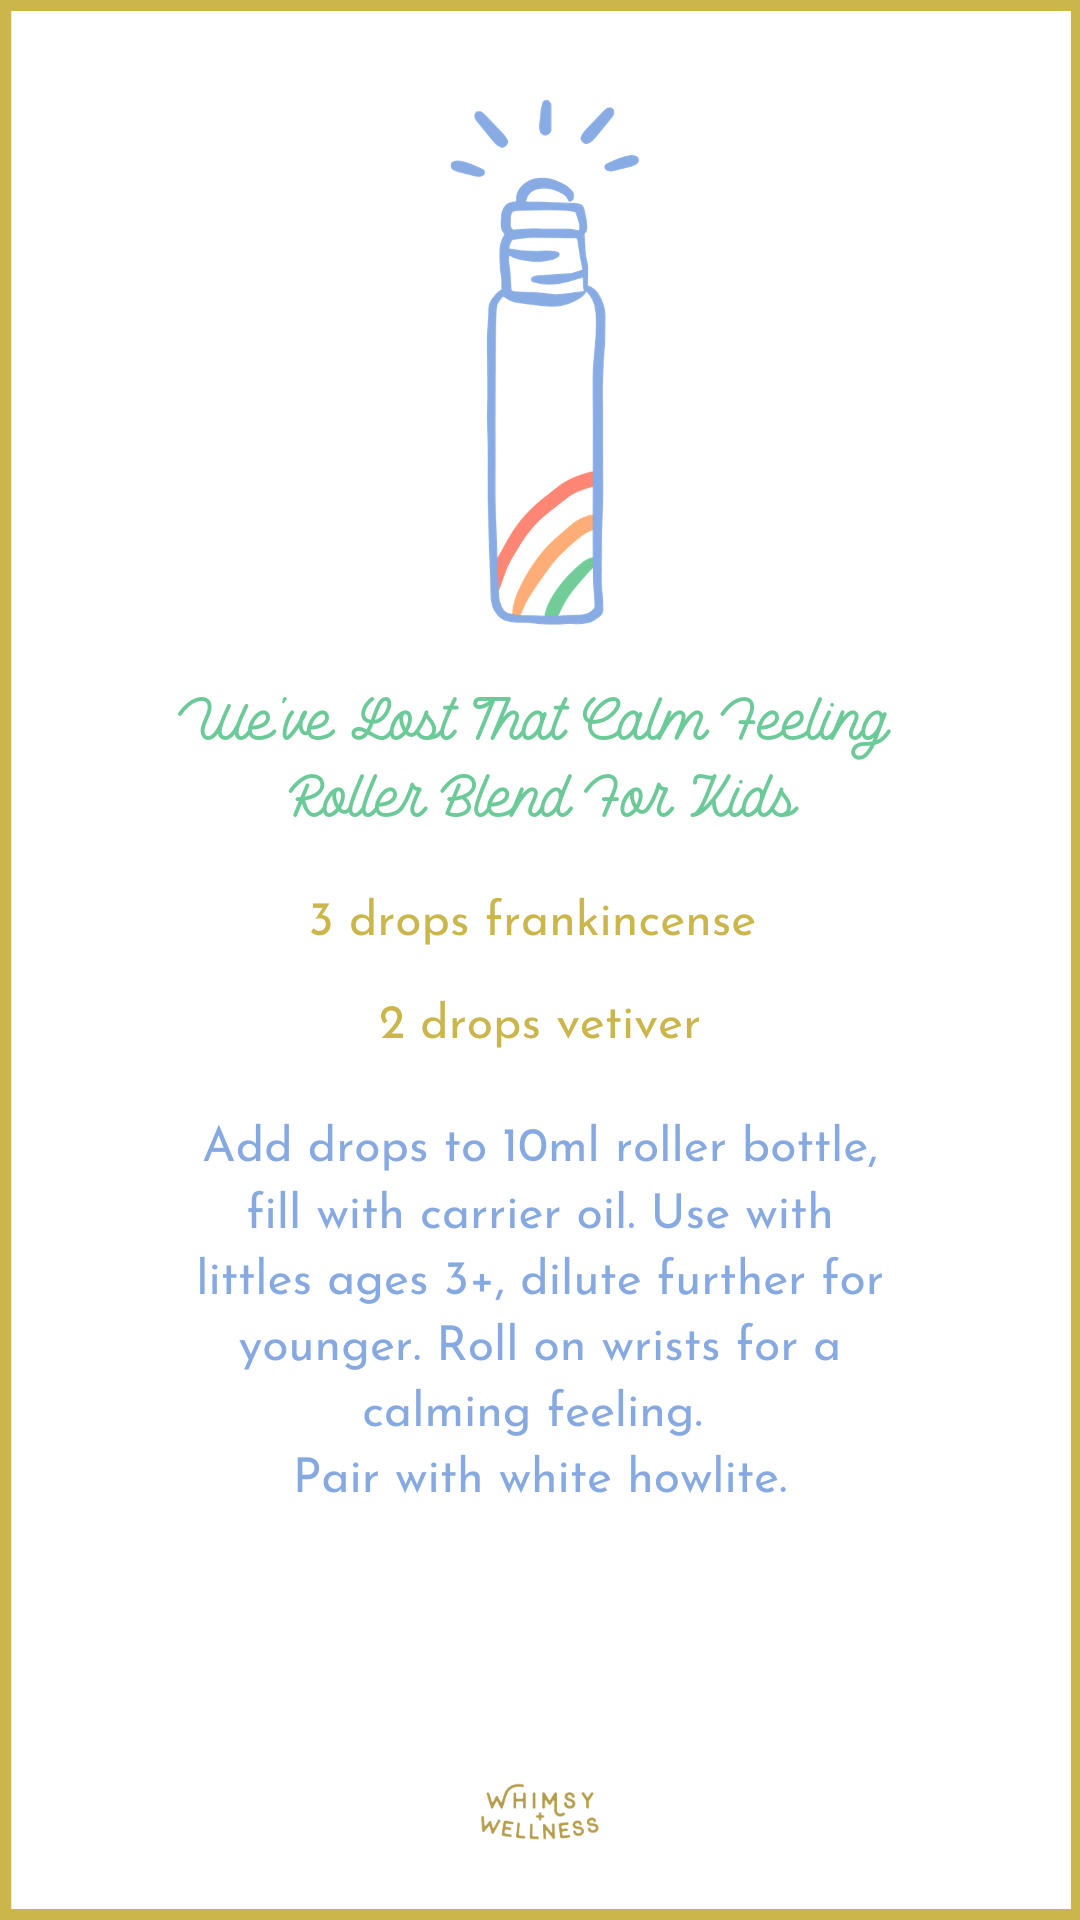 we've lost that calm feeling roller blend for kids to support a friend through a miscarriage